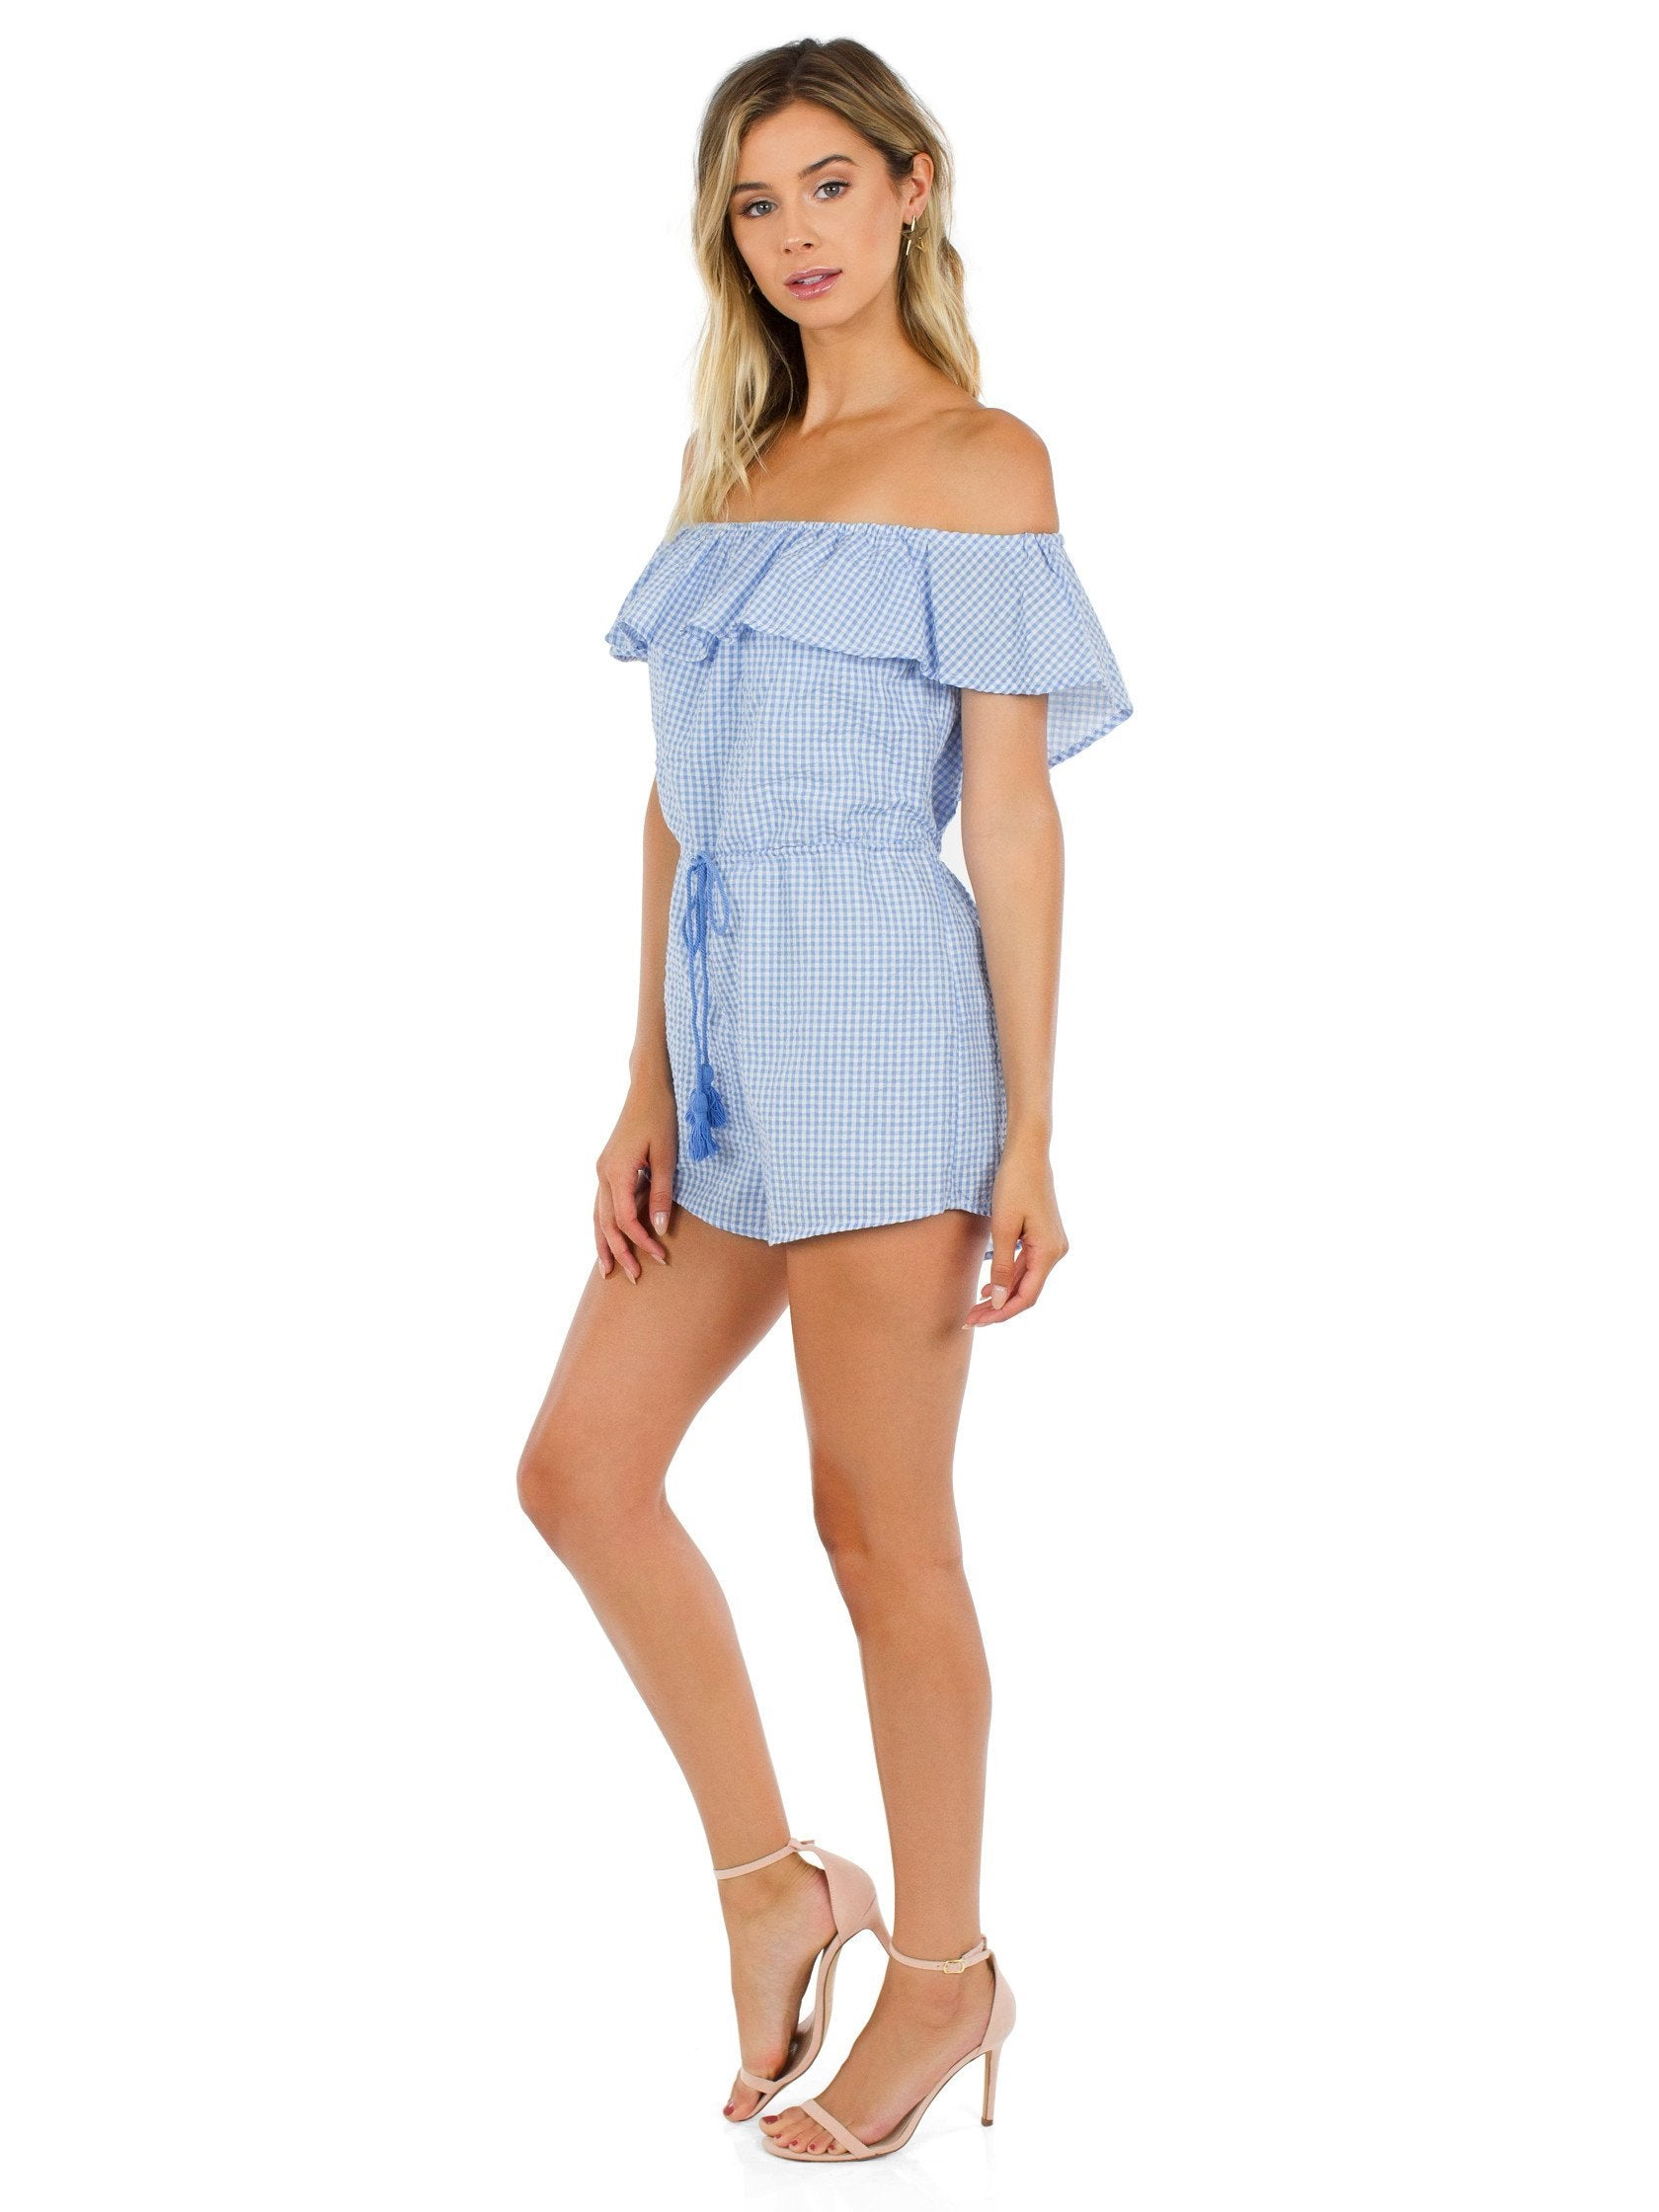 Woman wearing a romper rental from FashionPass called Going Gingham Romper